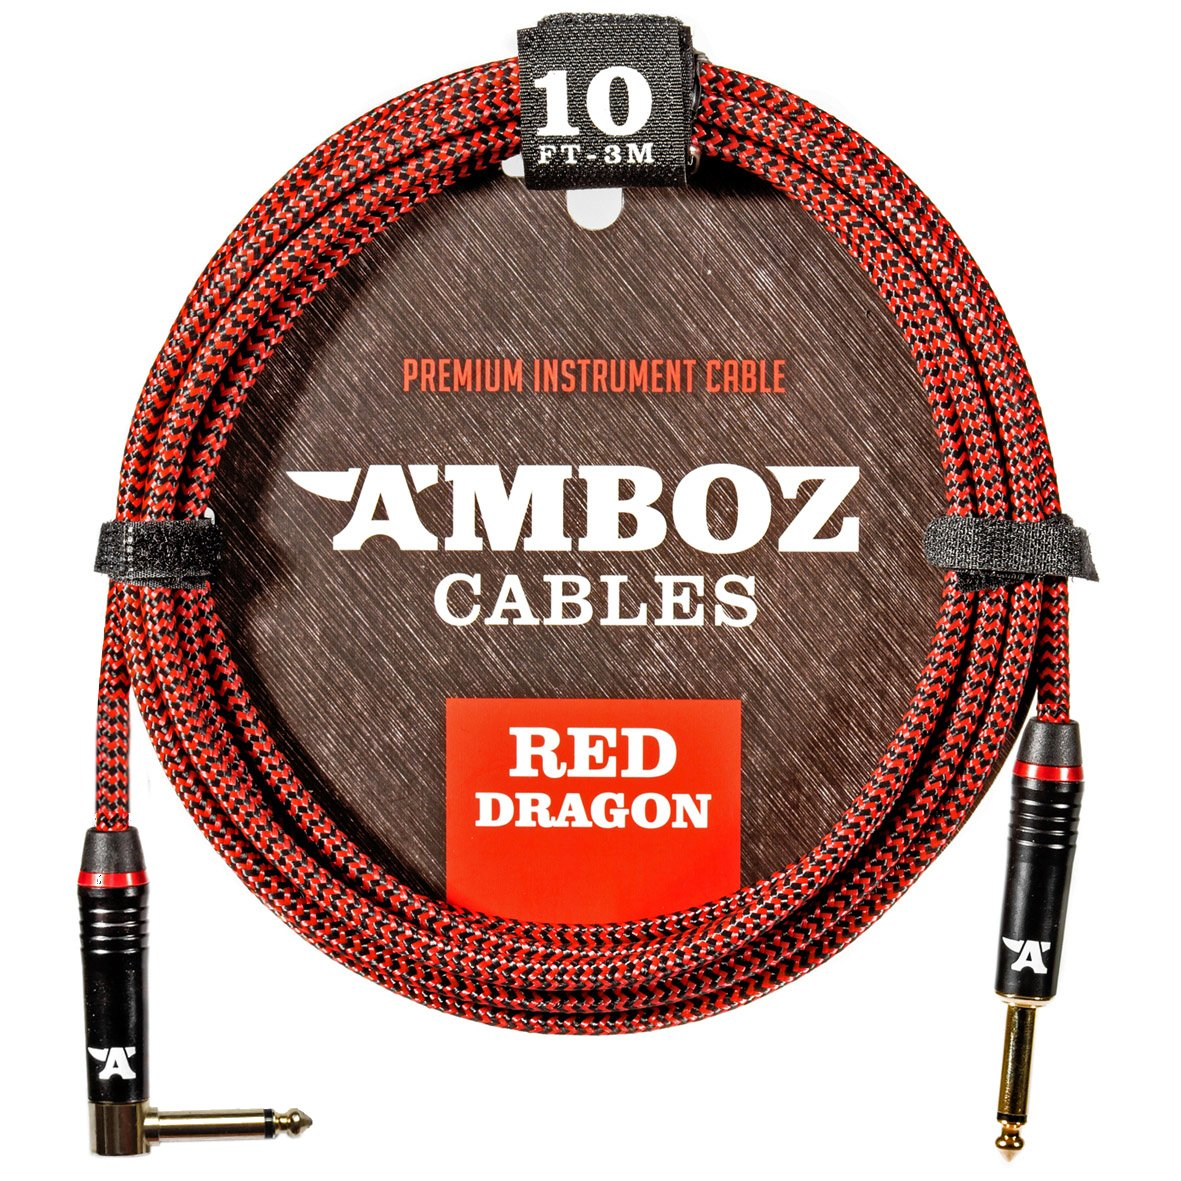 Red Dragon Guitar Cable - Sturdy & Ultra Flexible Instrument Cable For Electric & Bass Guitar Players - Super Noiseless, Used By Amateurs & Pros Alike - 10 FT/straight-rect./Get Ready To Rock!